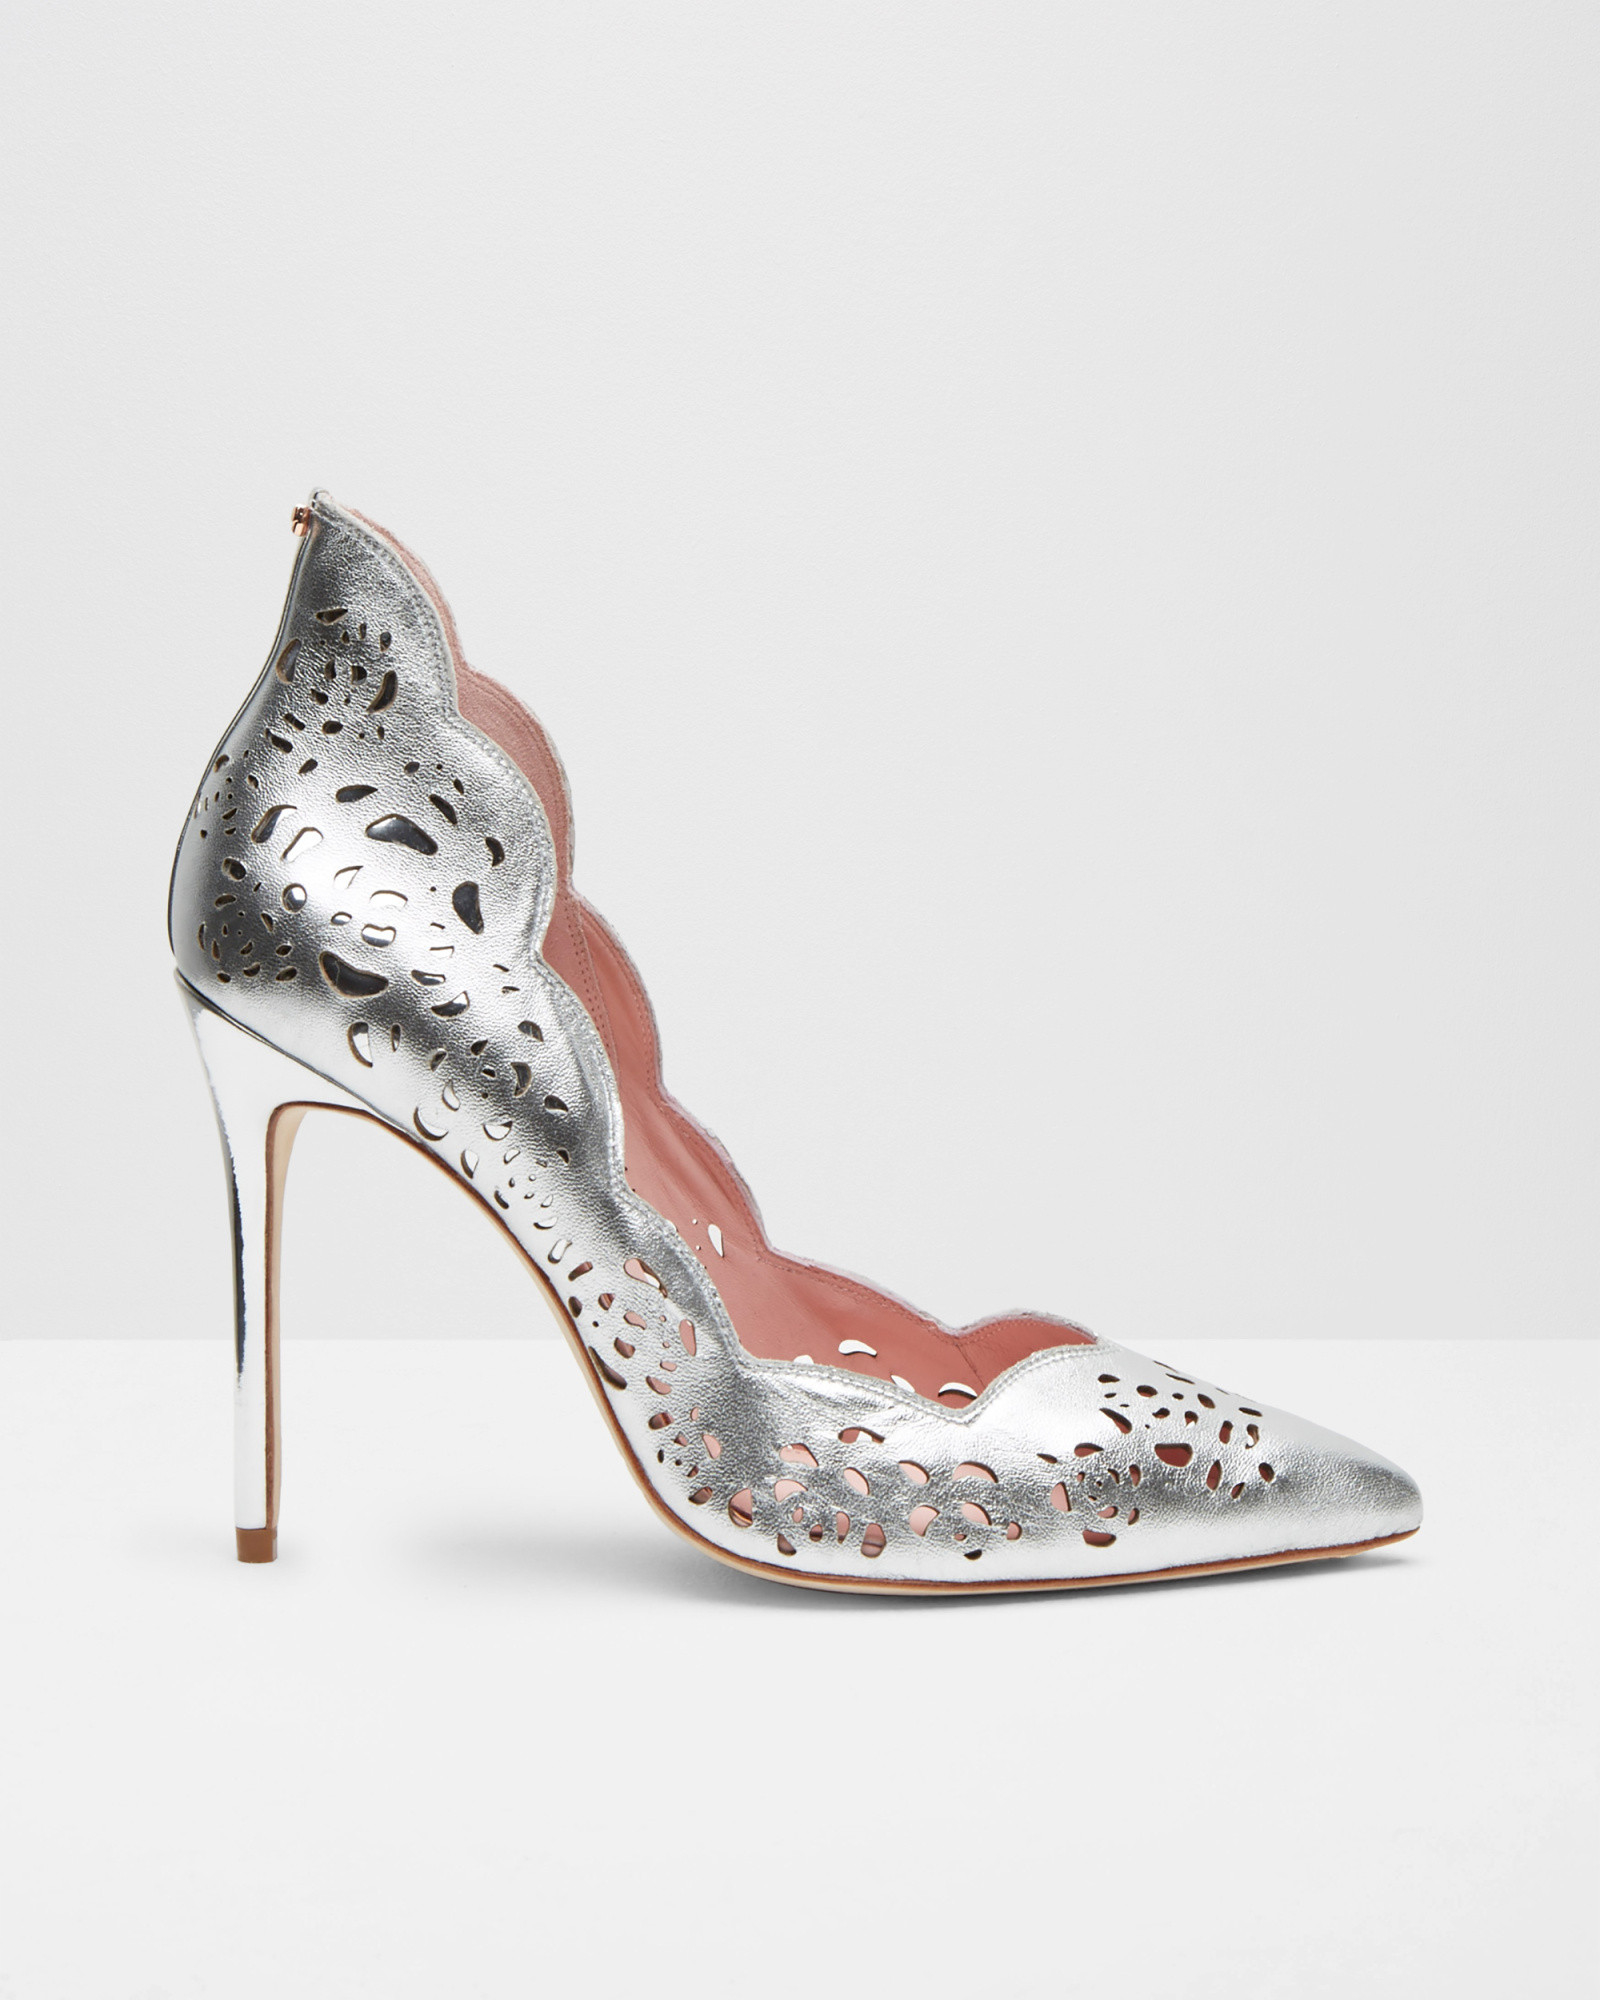 c658db931fab4a Ted Baker Metallic Bow Leather Court Shoes in Metallic - Lyst